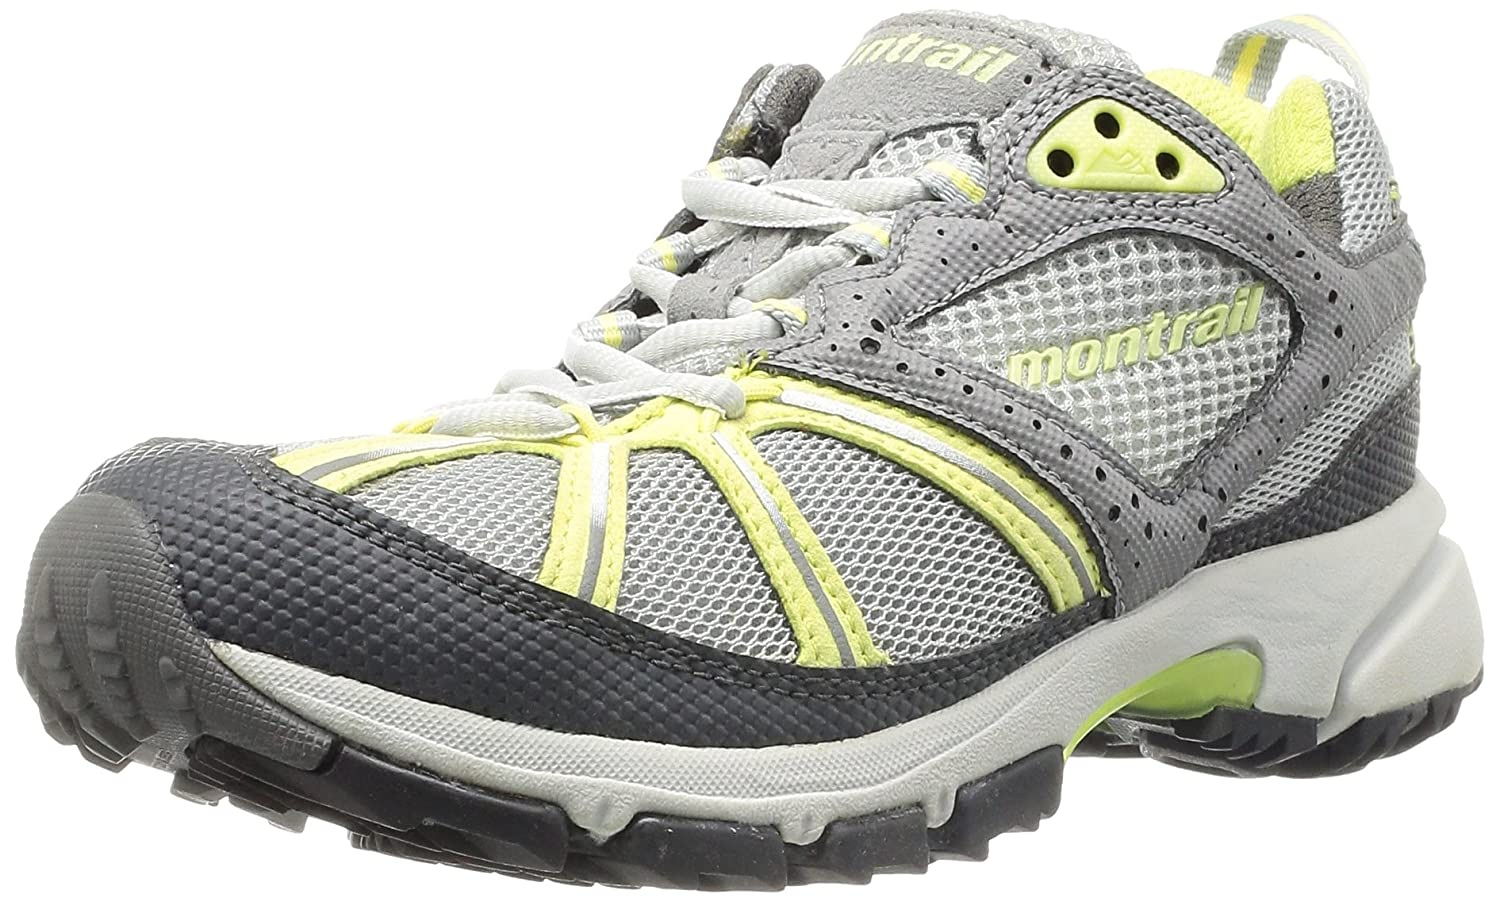 96d96d866d2b7 Amazon.com: Montrail Women's Streak Trail Running Shoes,Cool Grey ...